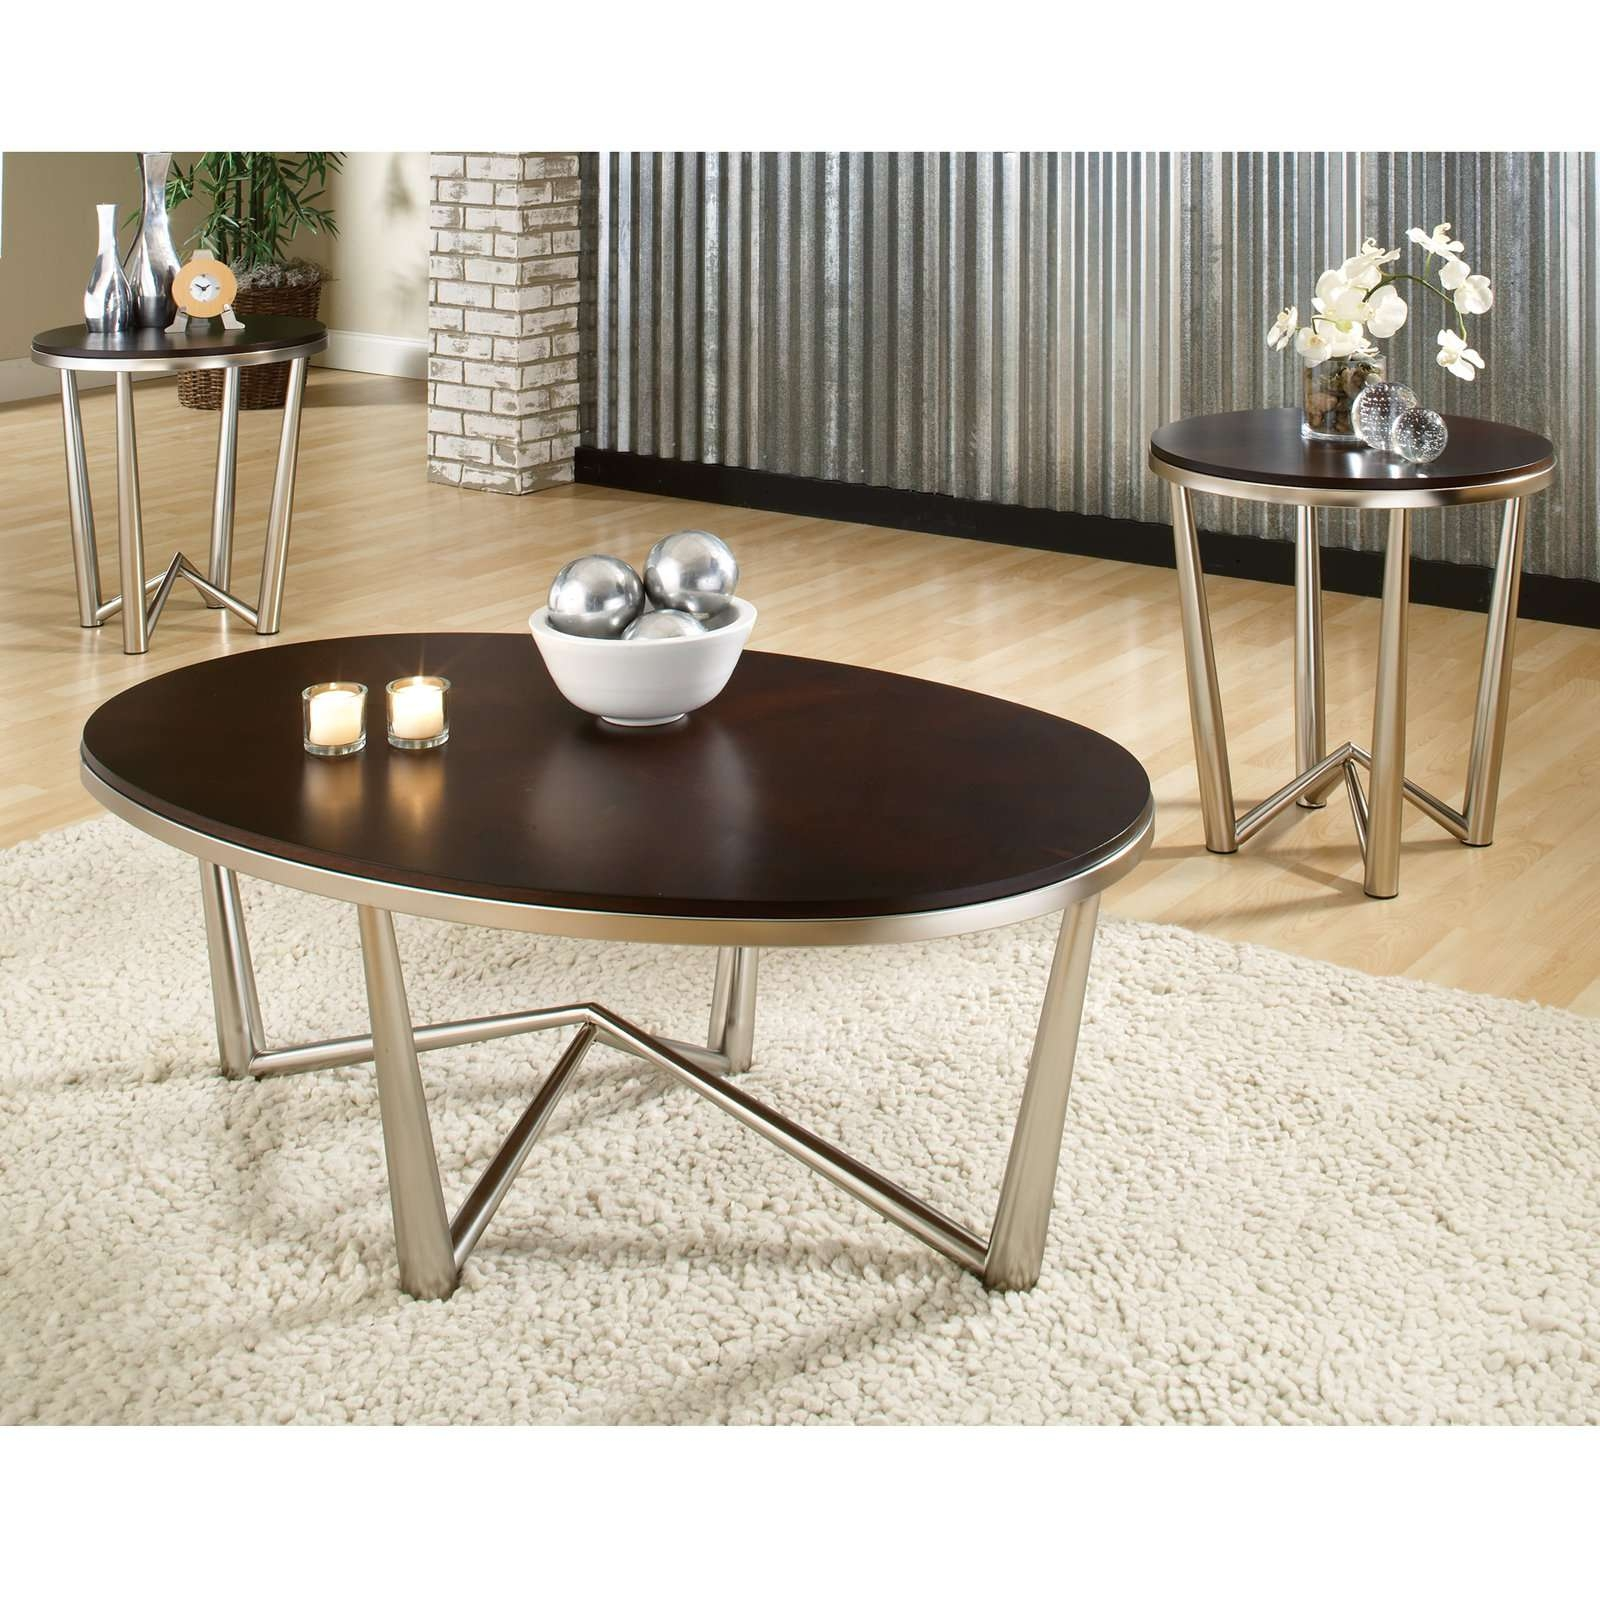 Coffee Table : 3 Coffee Table Set My Existing Coffee Table In Regarding 2017 Coffee Tables With Oval Shape (View 4 of 20)